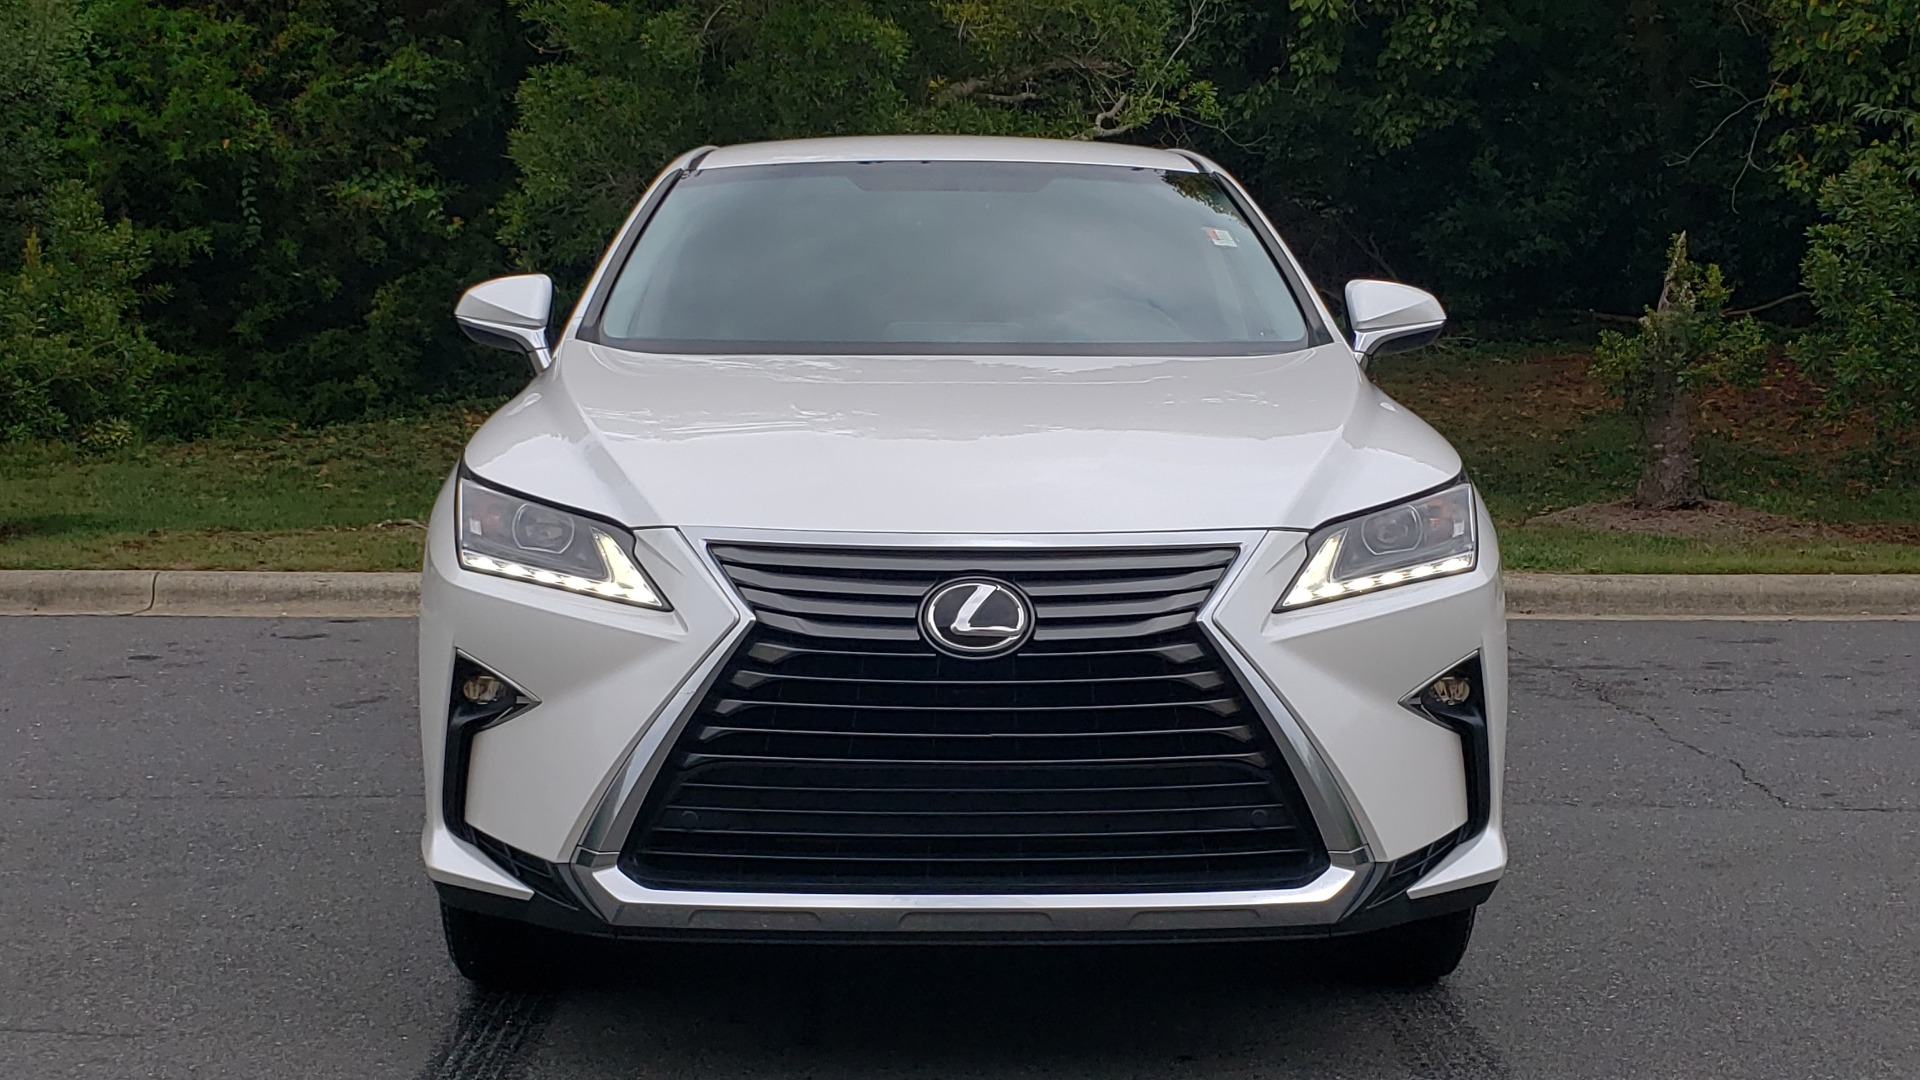 Used 2016 Lexus RX 350 FWD / 4-DR / 3.5L V6 / 8-SPD AUTO / LEATHER / REARVIEW for sale Sold at Formula Imports in Charlotte NC 28227 22